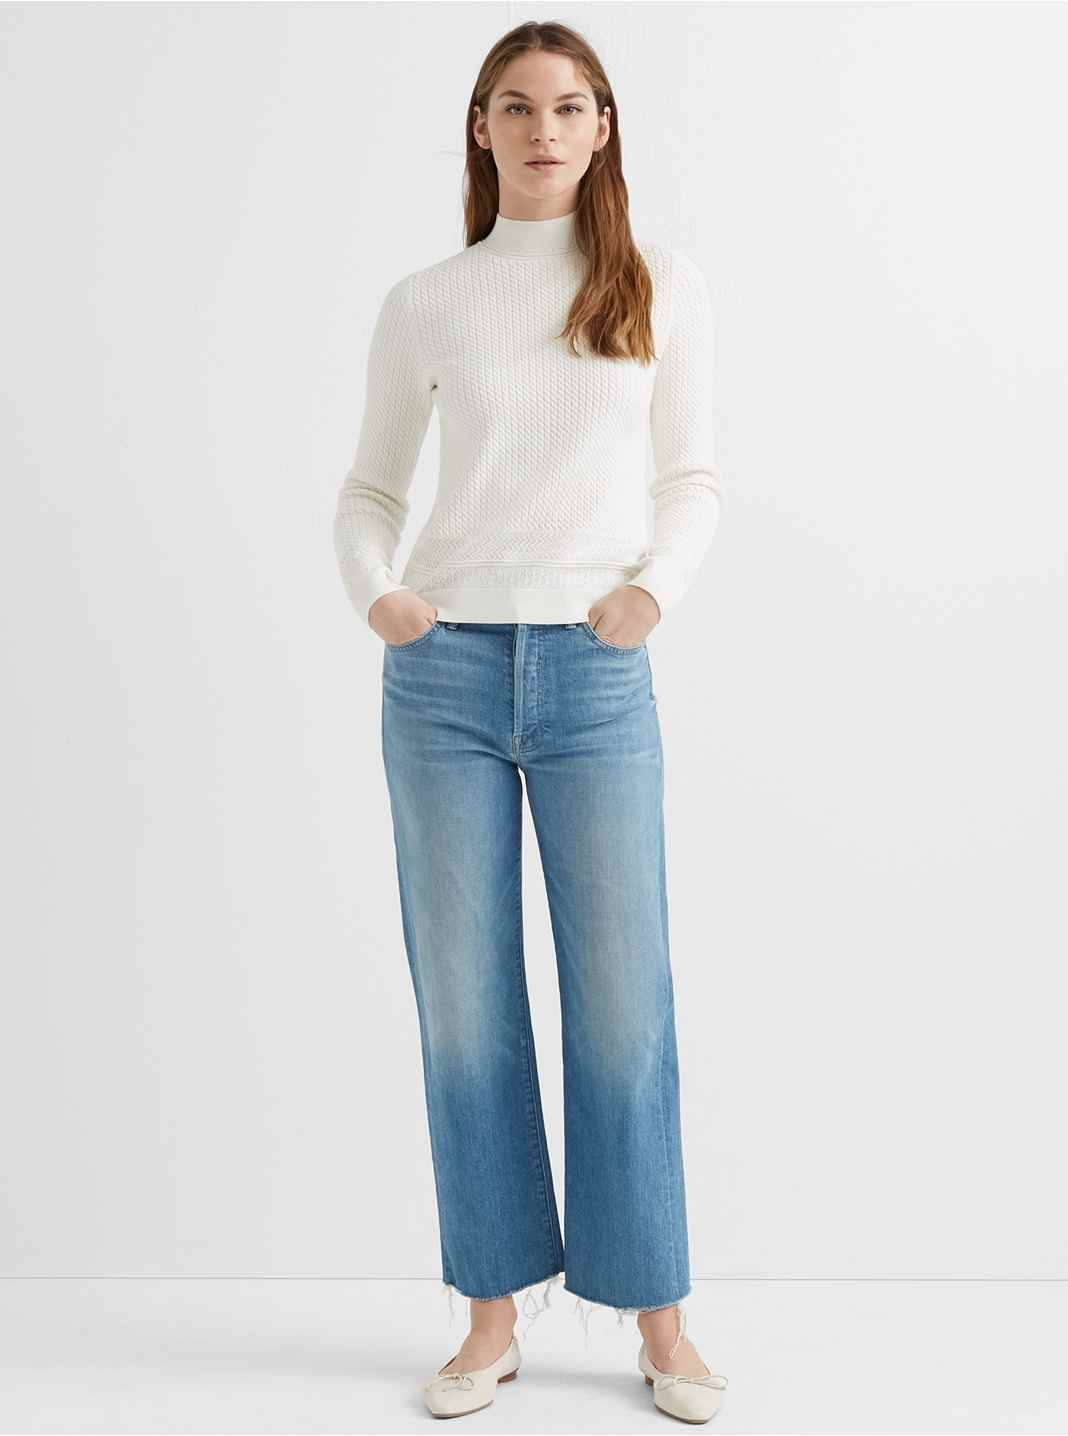 Club Monaco: Up To 60% Off + Extra 30% Off